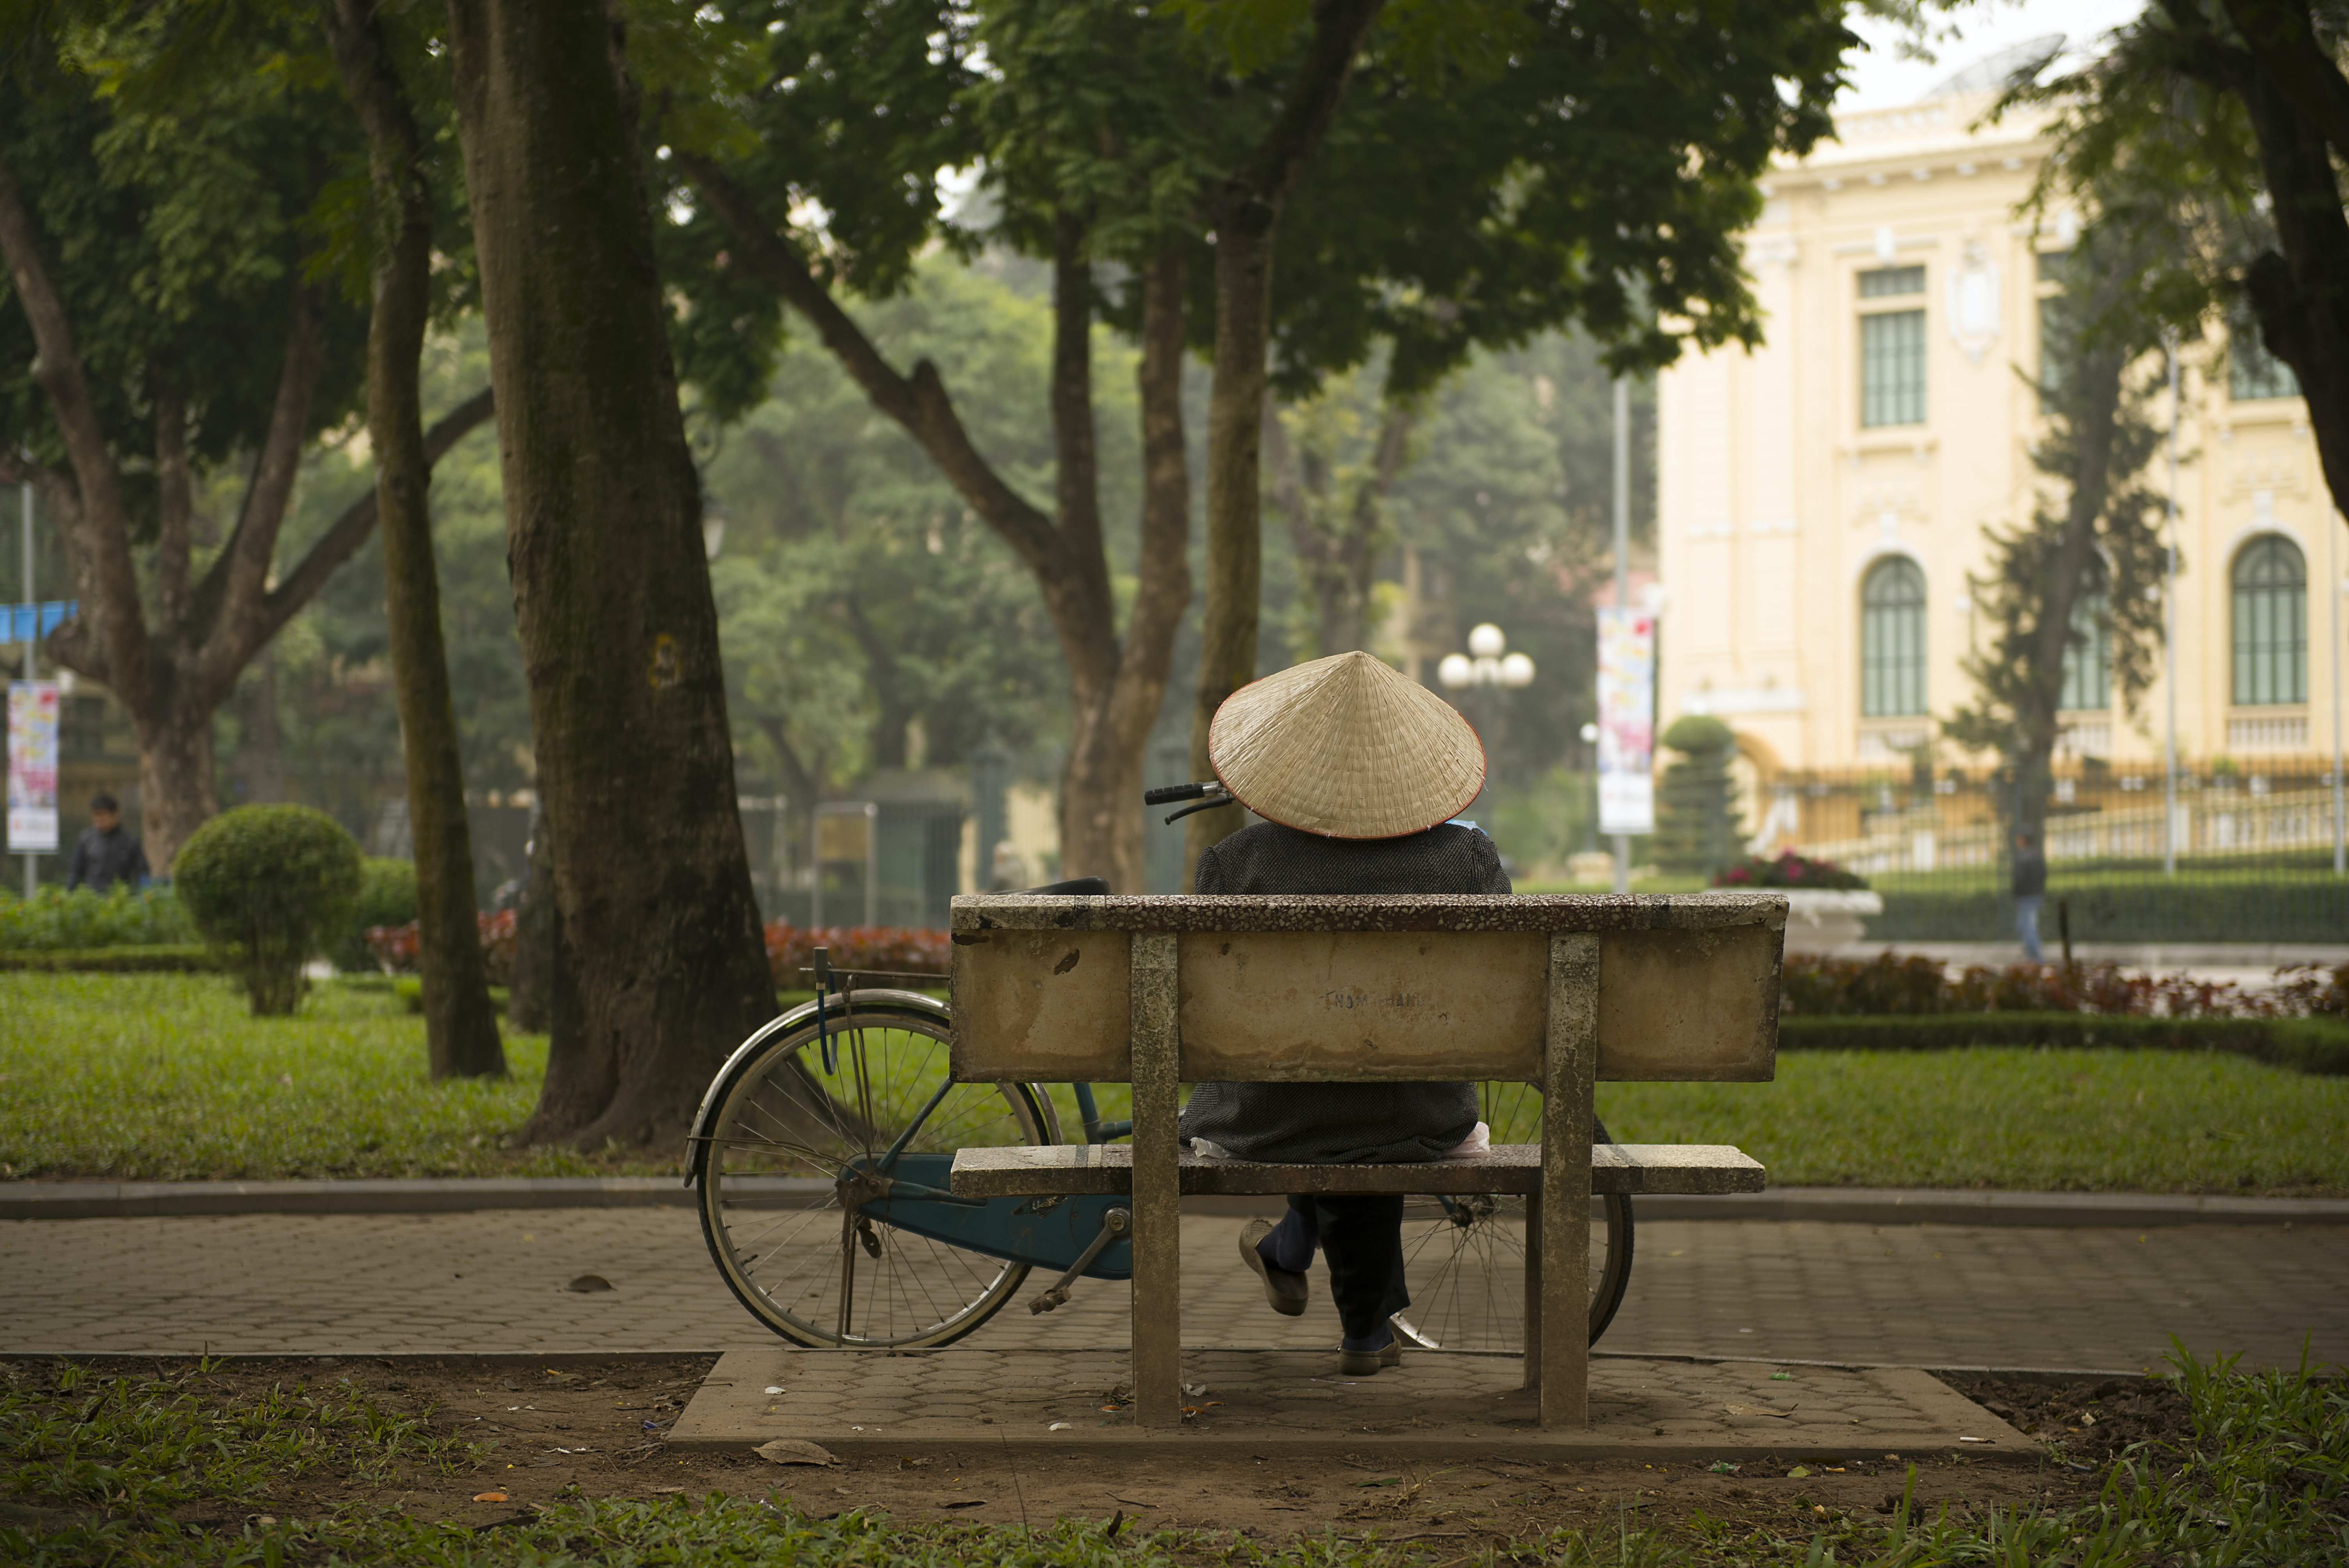 A person wearing a traditional Vietnamese hat sitting on a park bench with their bicycle nearby in Hanoi